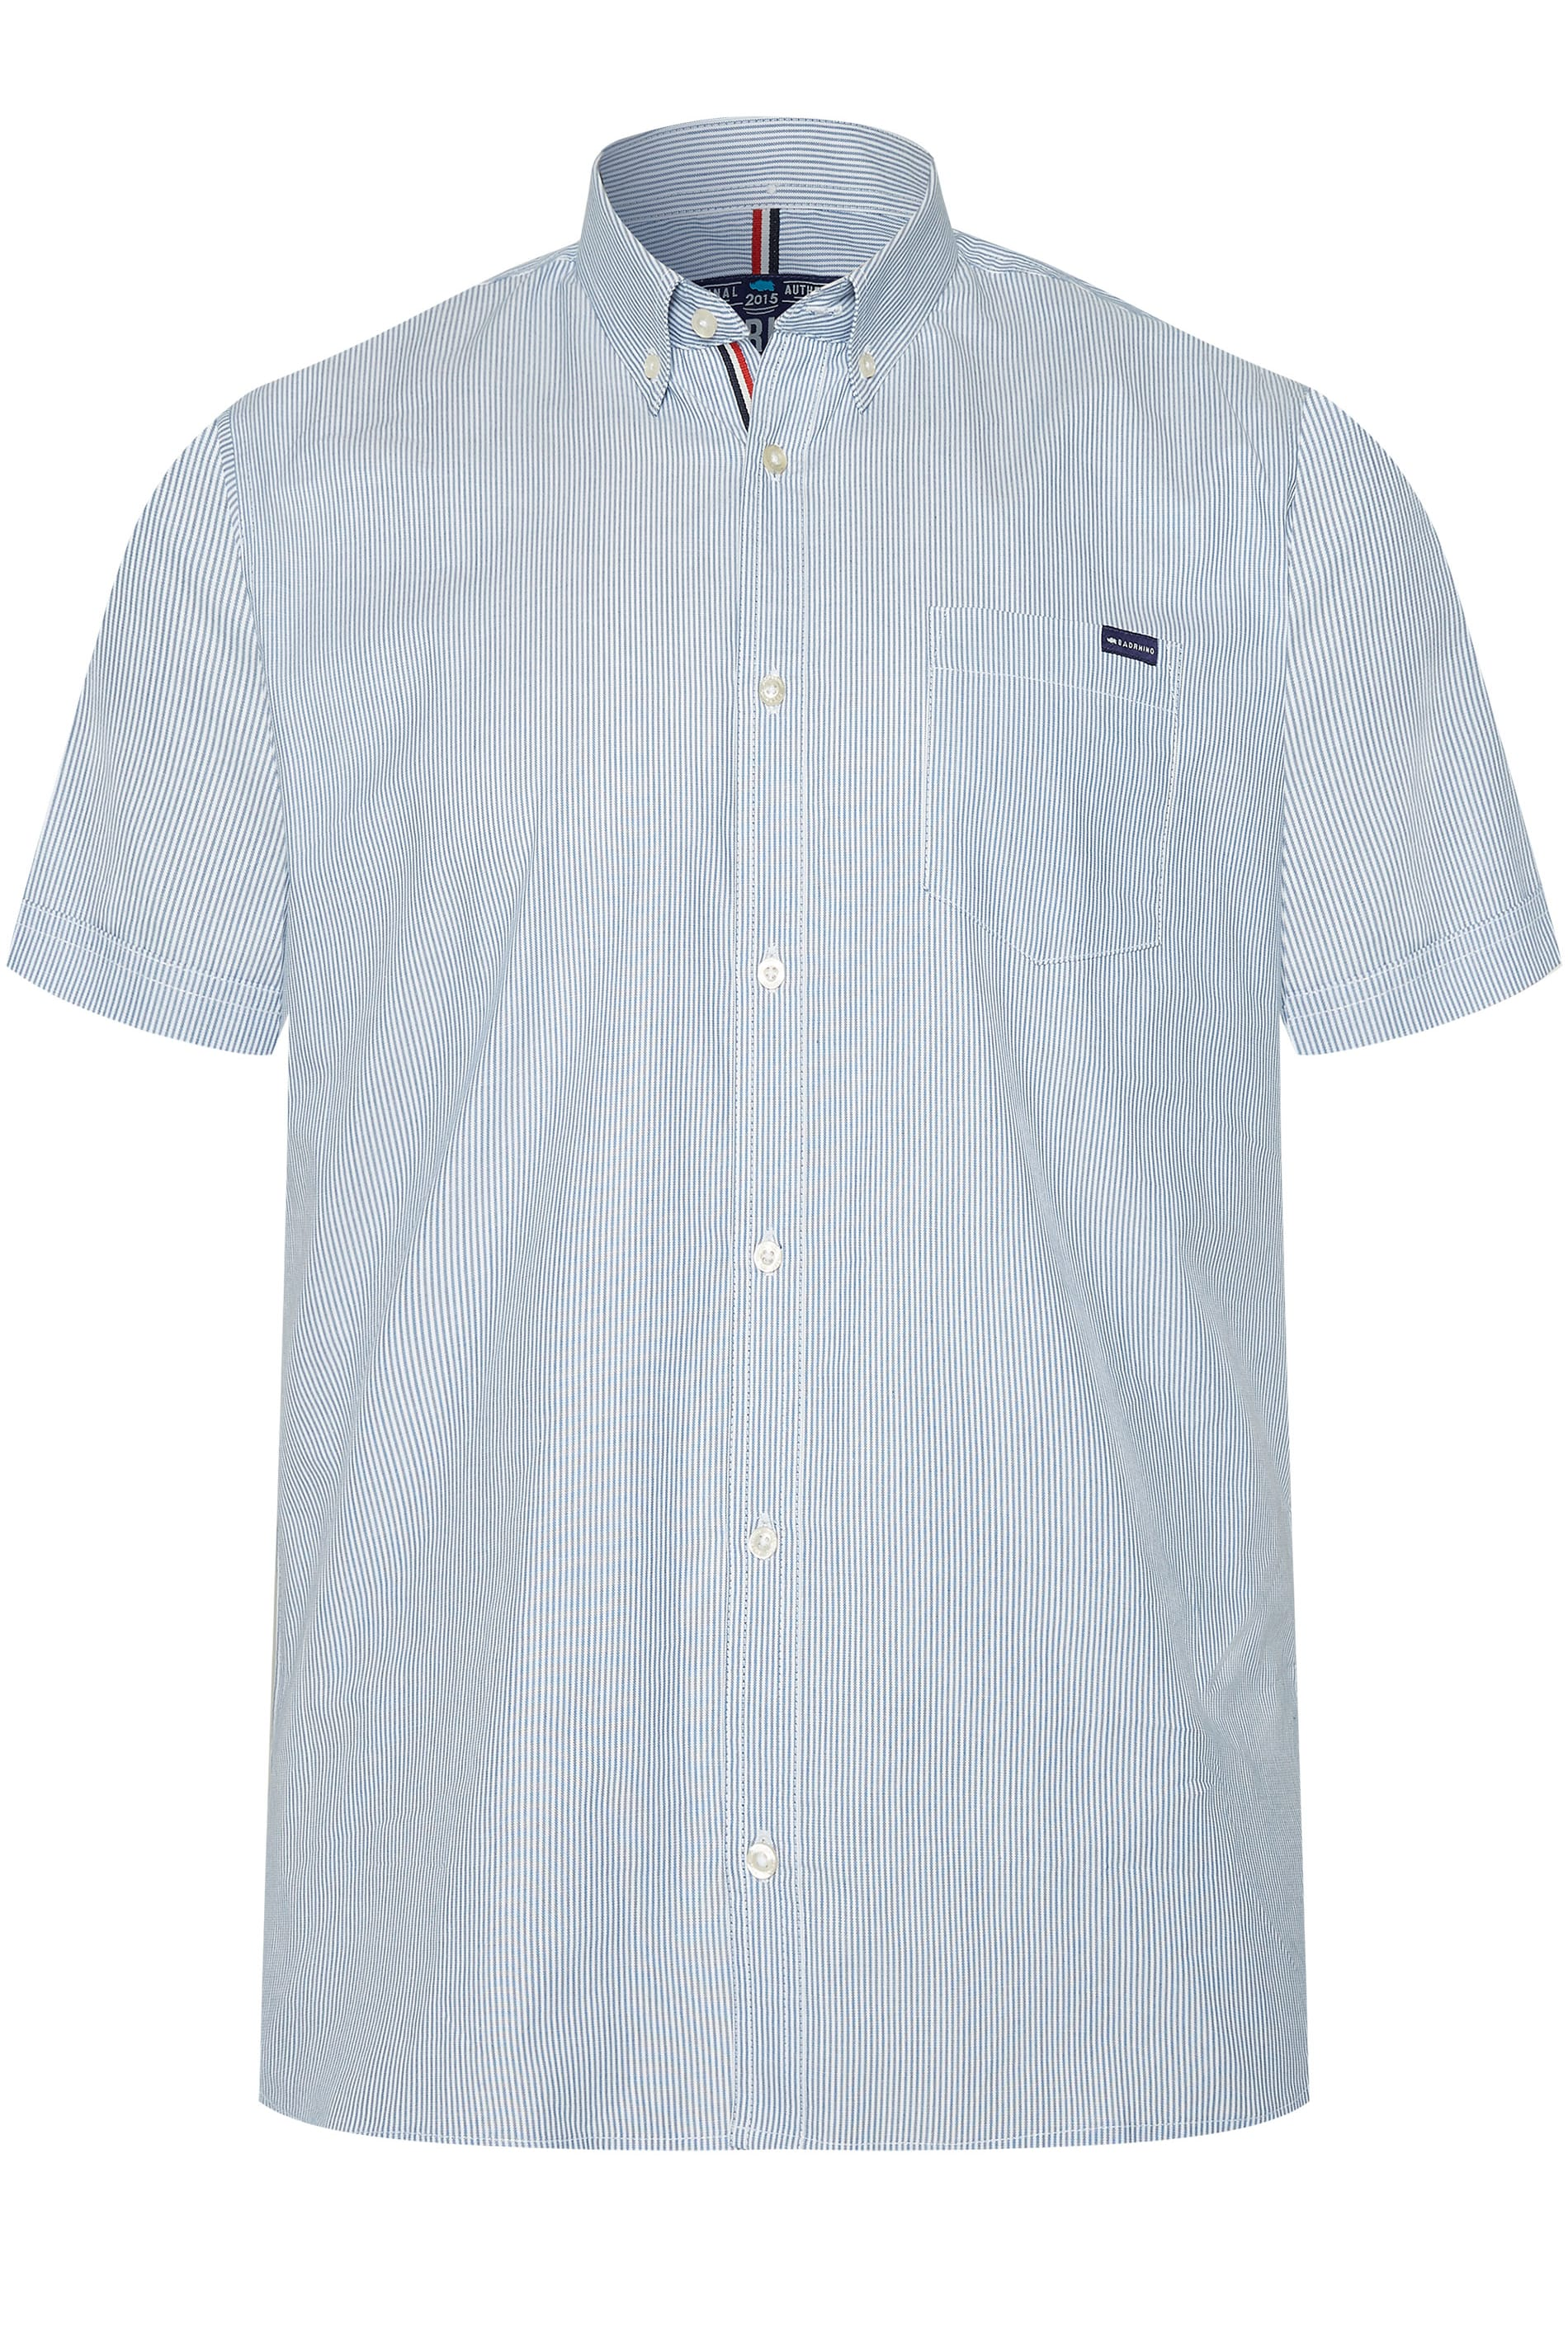 BadRhino Blue Striped Oxford Shirt